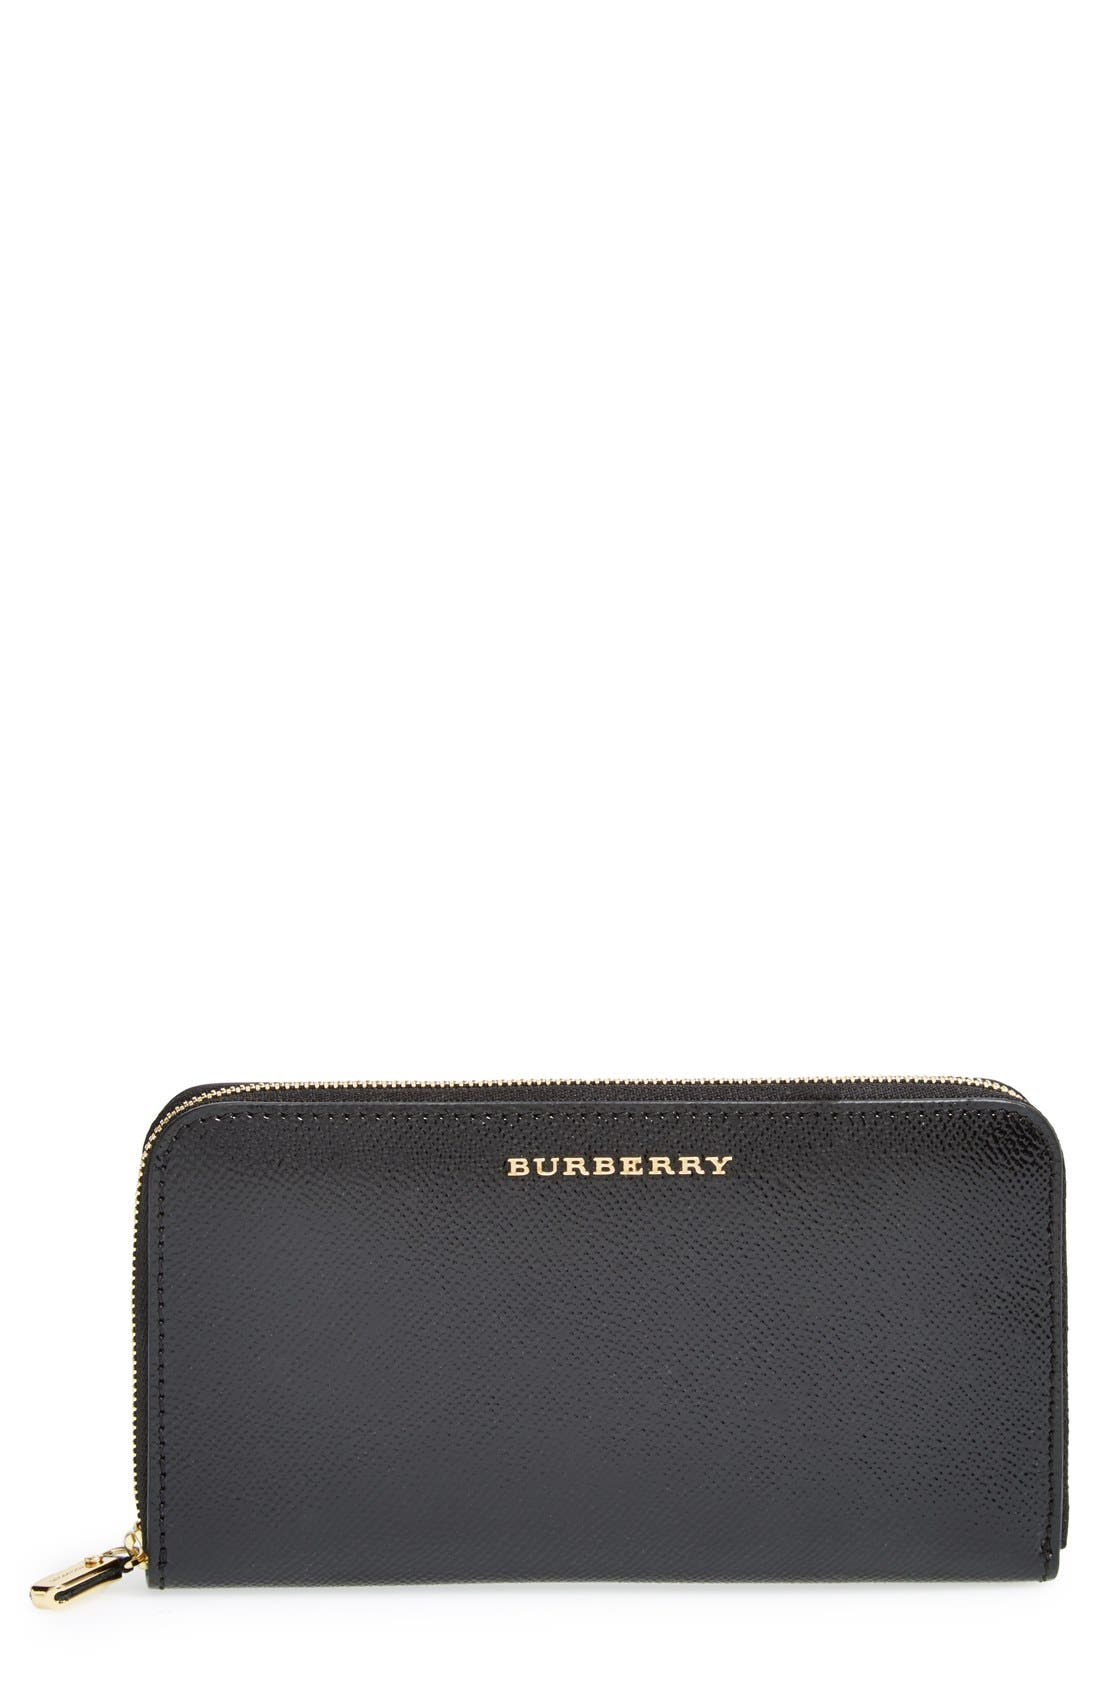 BURBERRY,                             'Elmore - London Leather' Zip Around Wallet,                             Main thumbnail 1, color,                             001